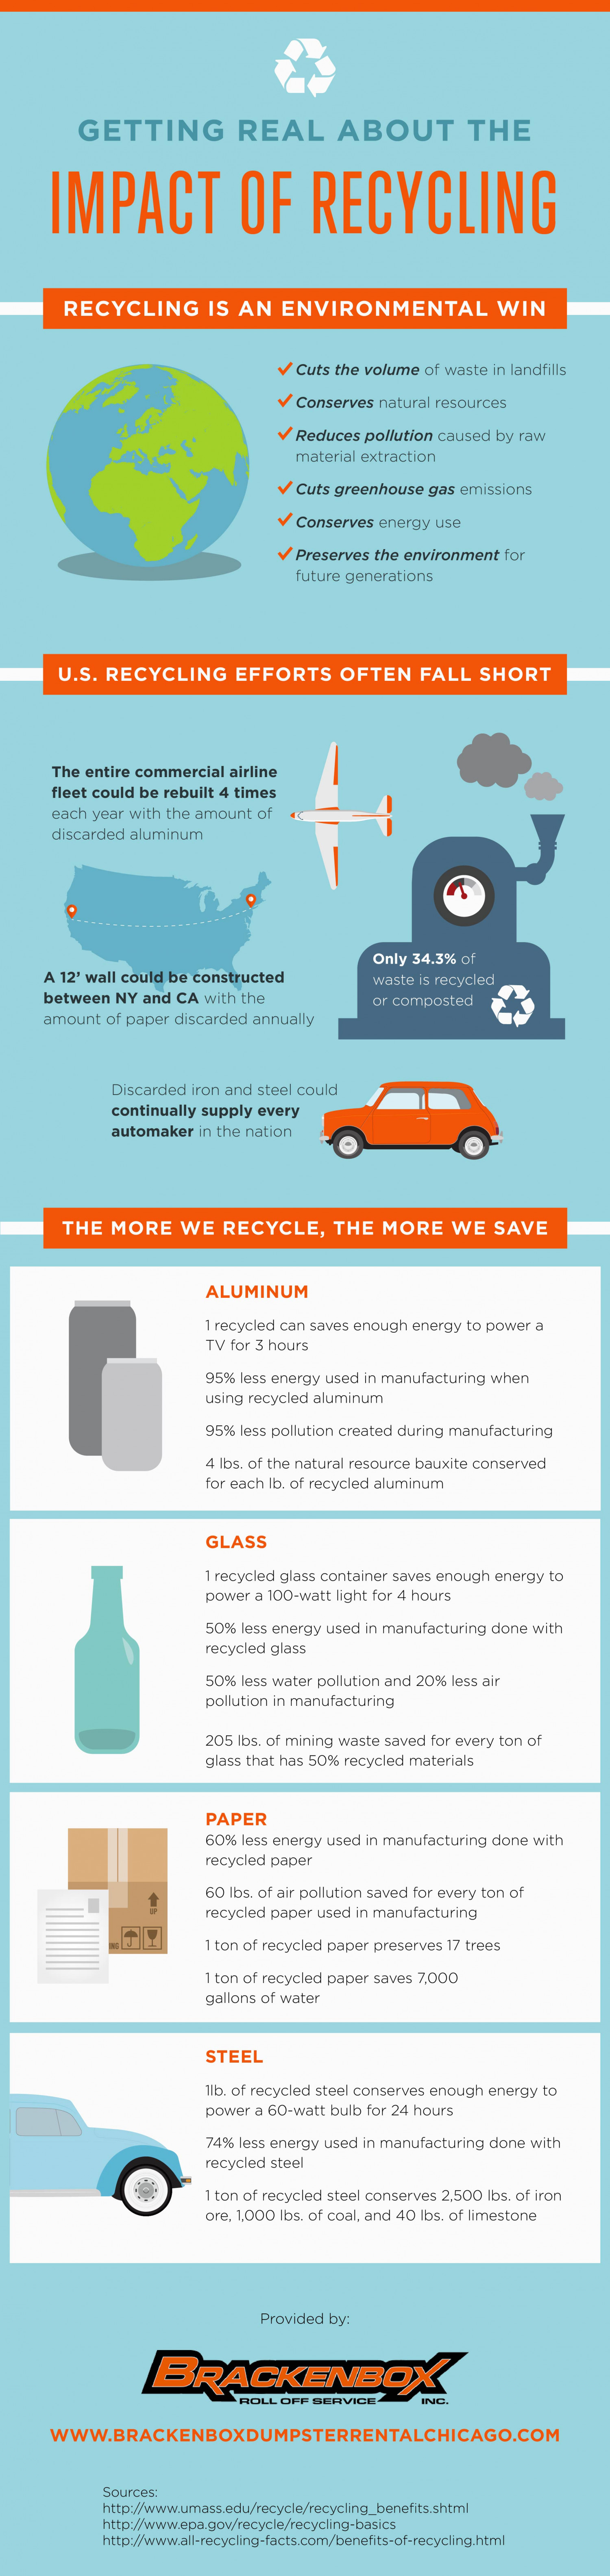 Getting Real about the Impact of Recycling Infographic